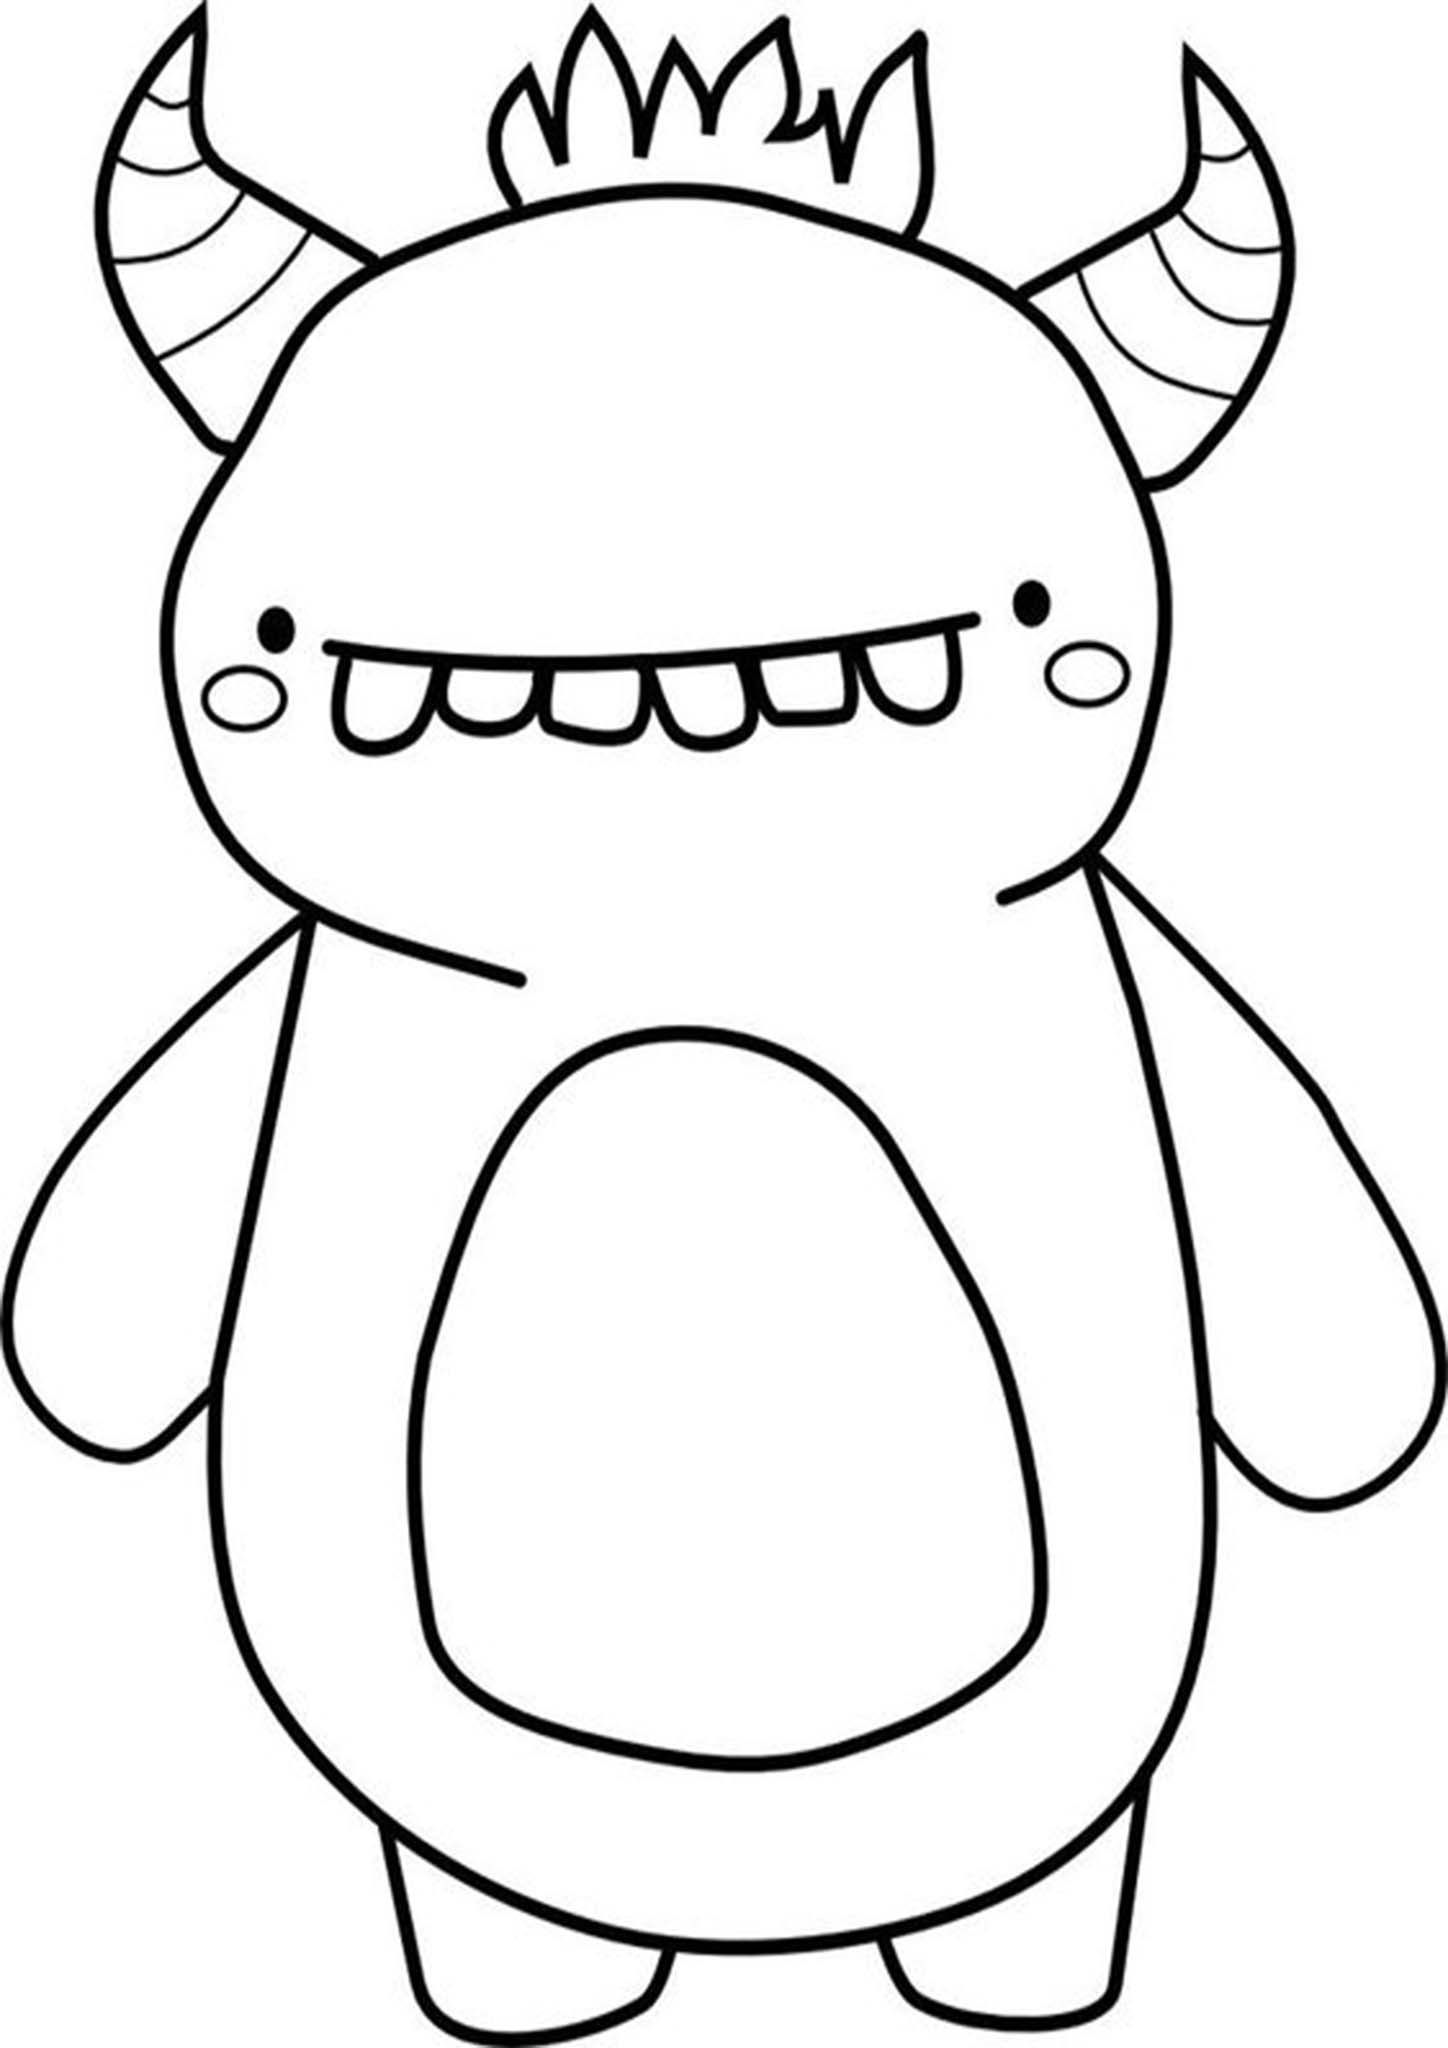 Free Easy To Print Monster Coloring Pages In 2021 Monster Coloring Pages Coloring Pages Free Printable Coloring Pages